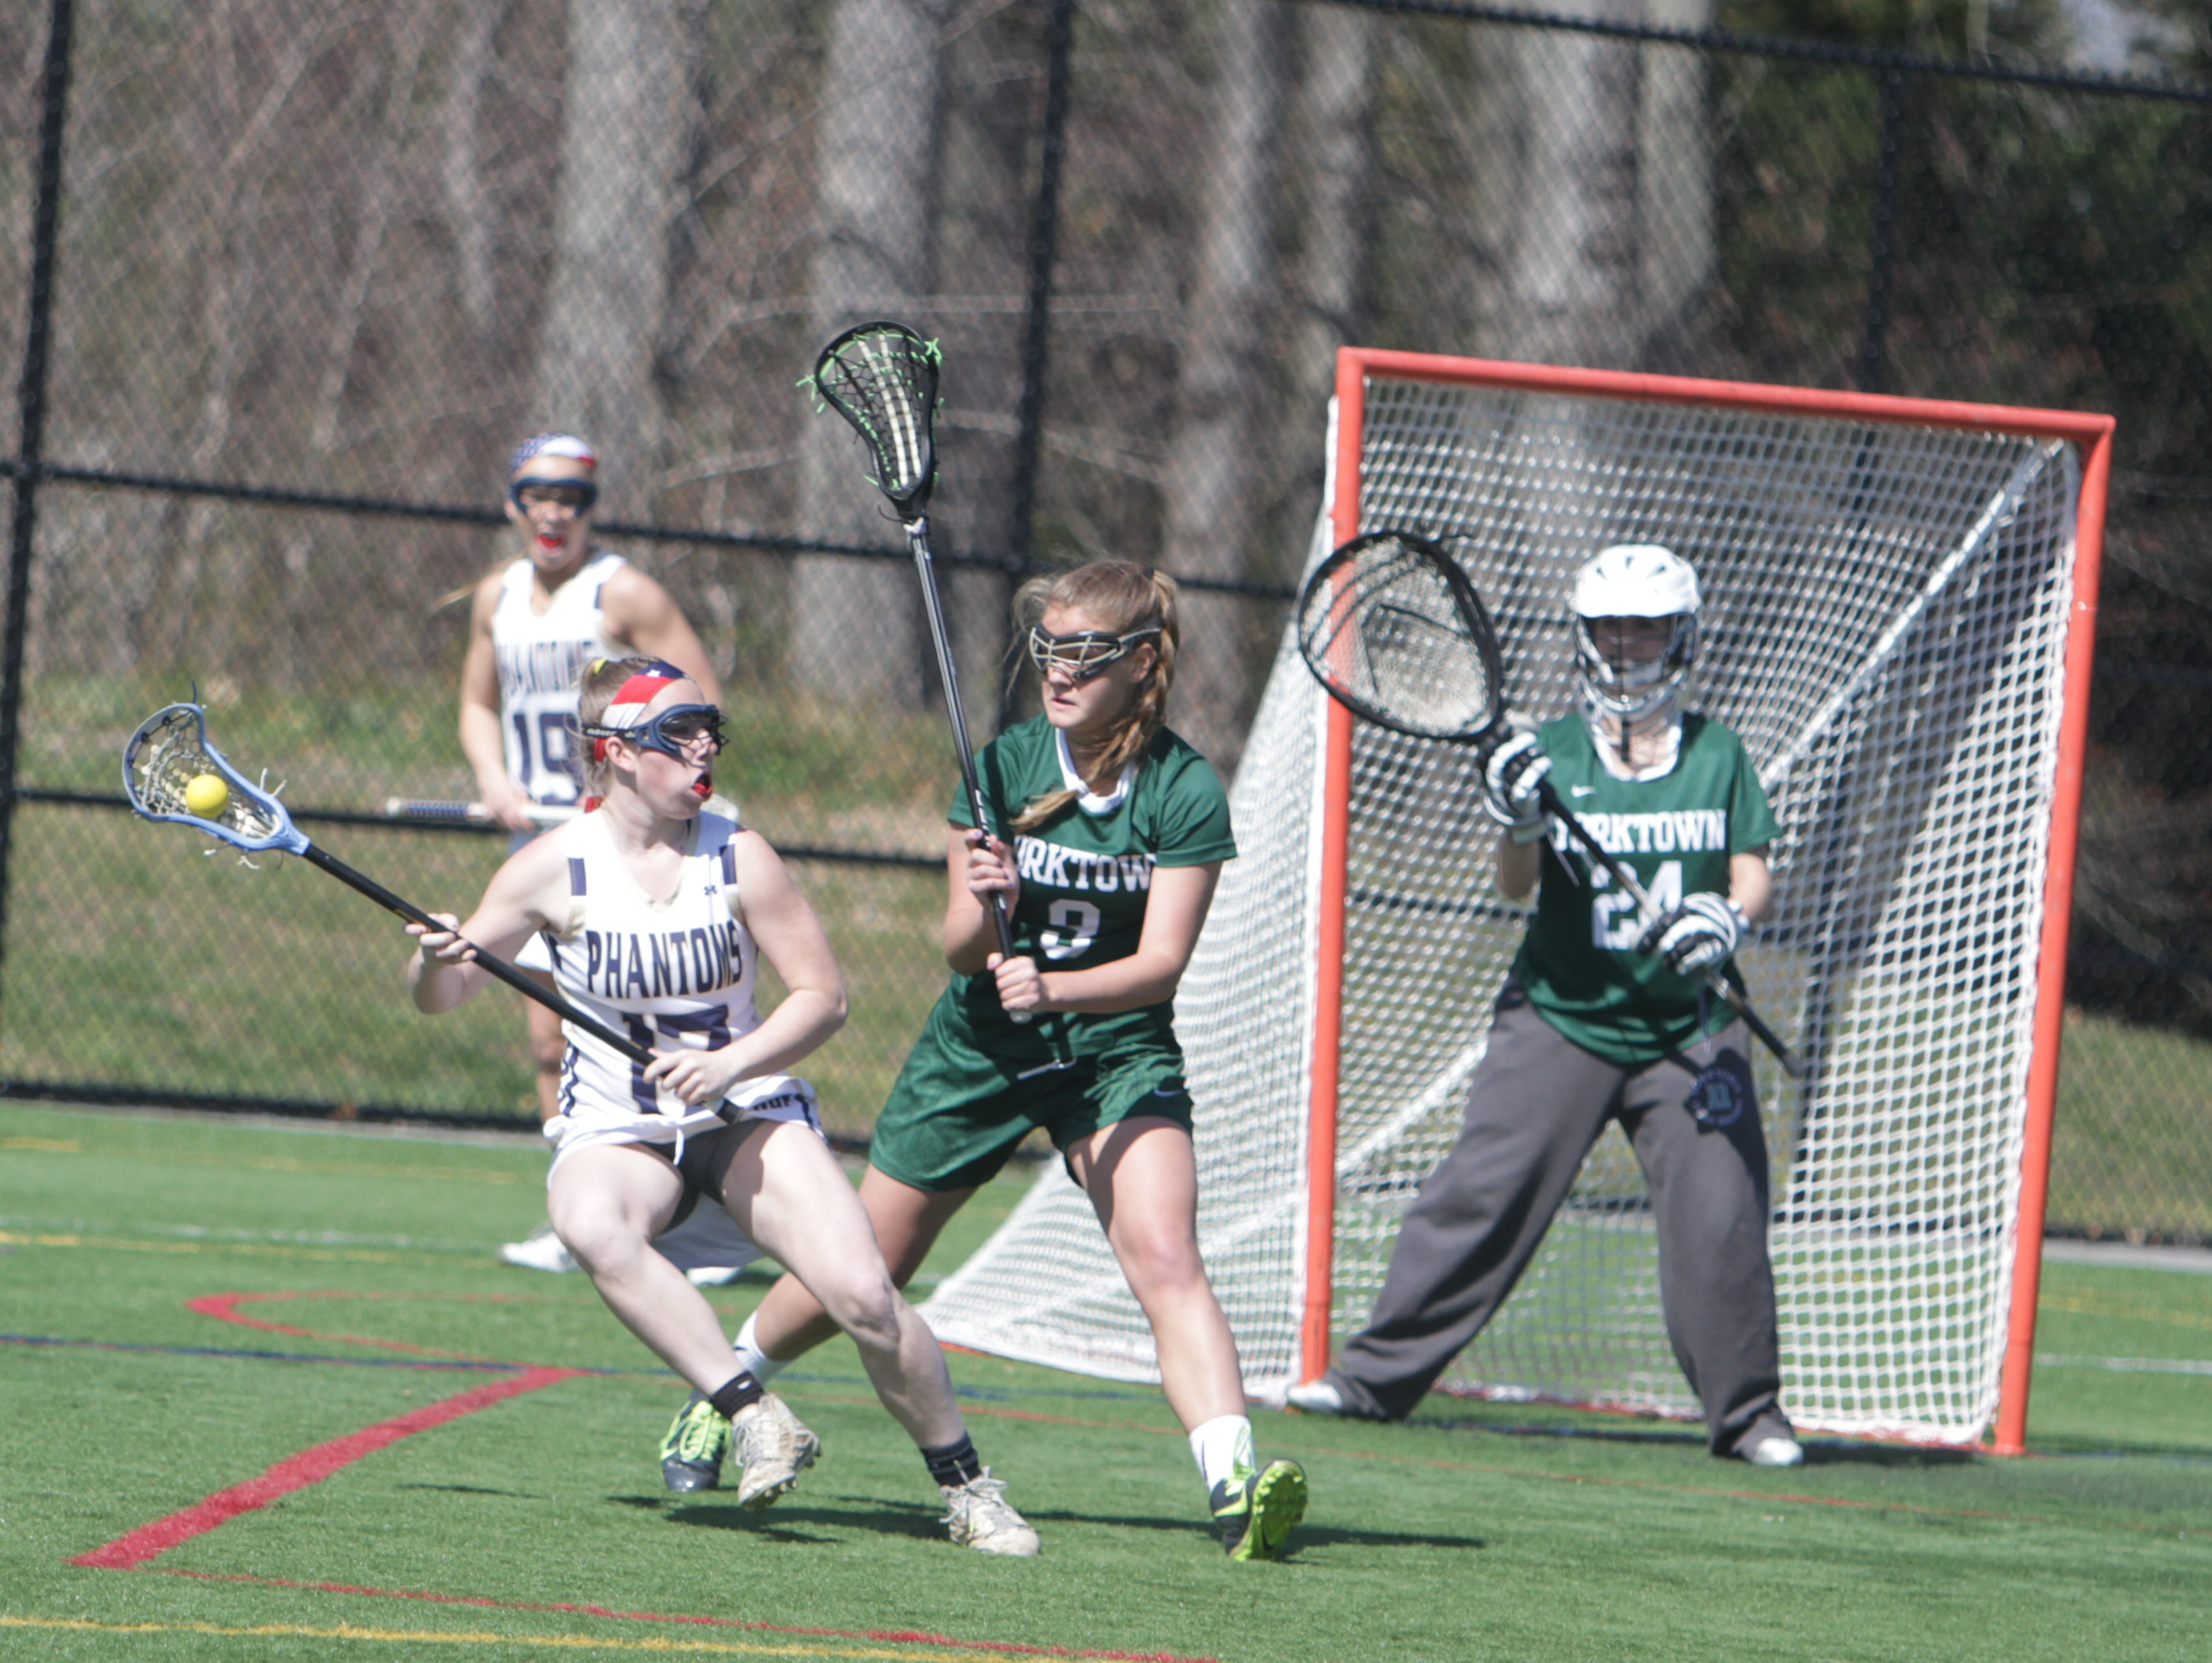 Bayport-Blue Point's Kelsi Lonigro (17) is defended by Yorktown's Mary Kate Murphy during a girls lacrosse game between Yorktown and Bayport-Blue Point in the Gains for Brains Lax Showcase at Cold Spring Harbor High School on Saturday, April 16th, 2016. Bayport-Blue Point won 16-8.